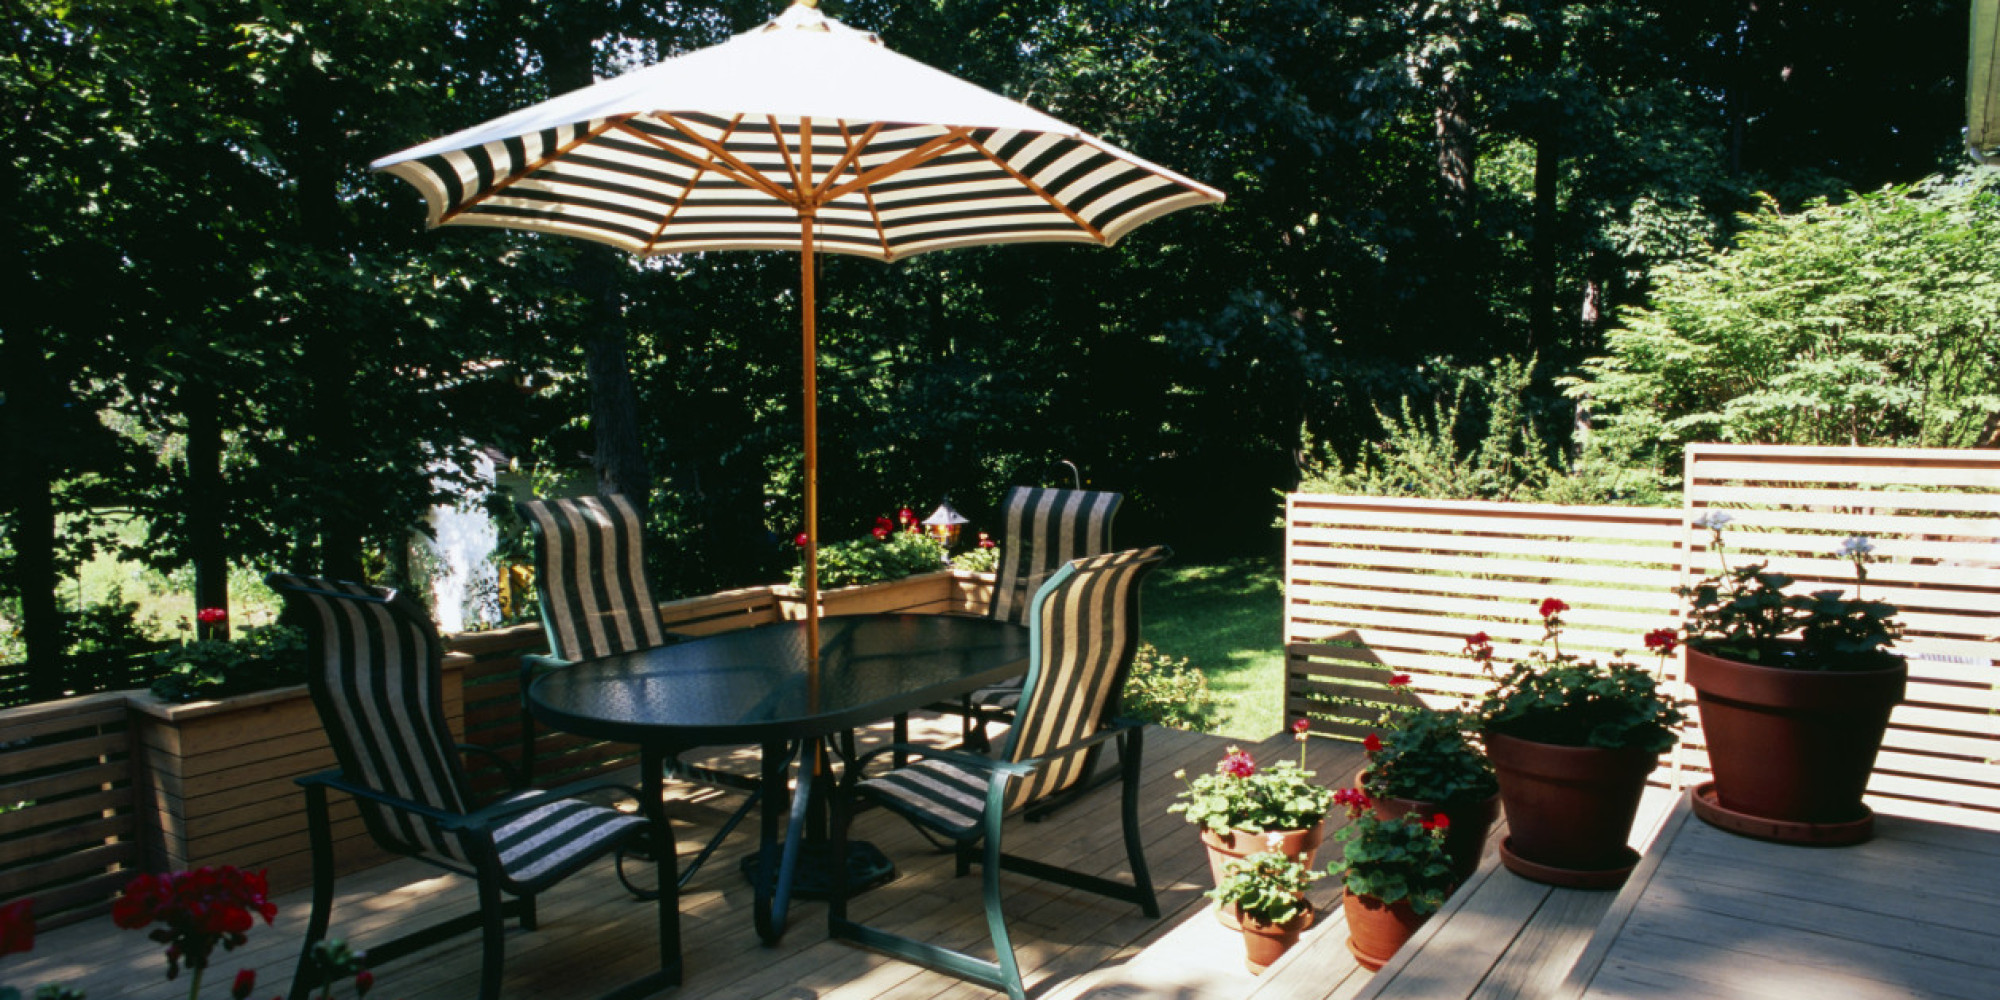 6 Brilliant and Inexpensive Patio Ideas for Small Yards ... on Cheap Backyard Patio Ideas id=71642